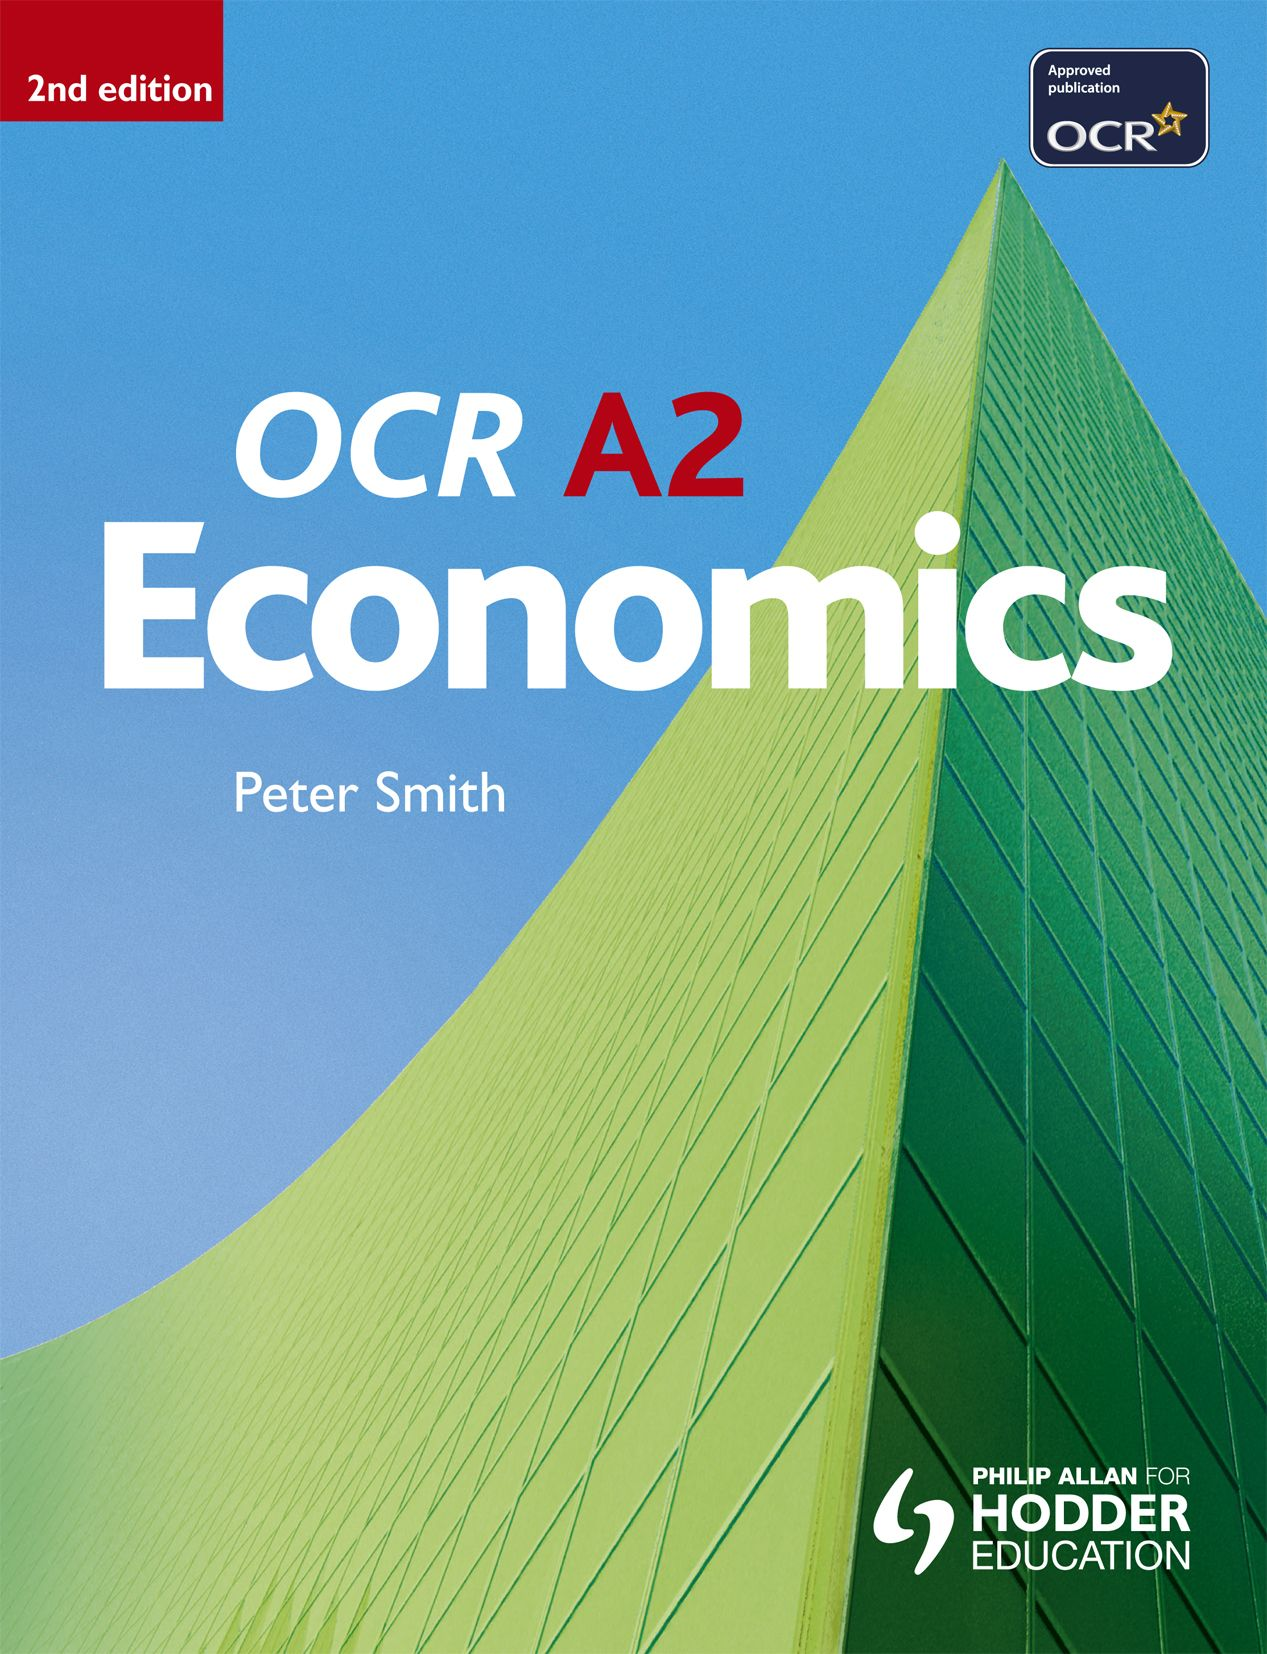 ocr a2 economics an invaluable course companion this 2nd edition ocr ...